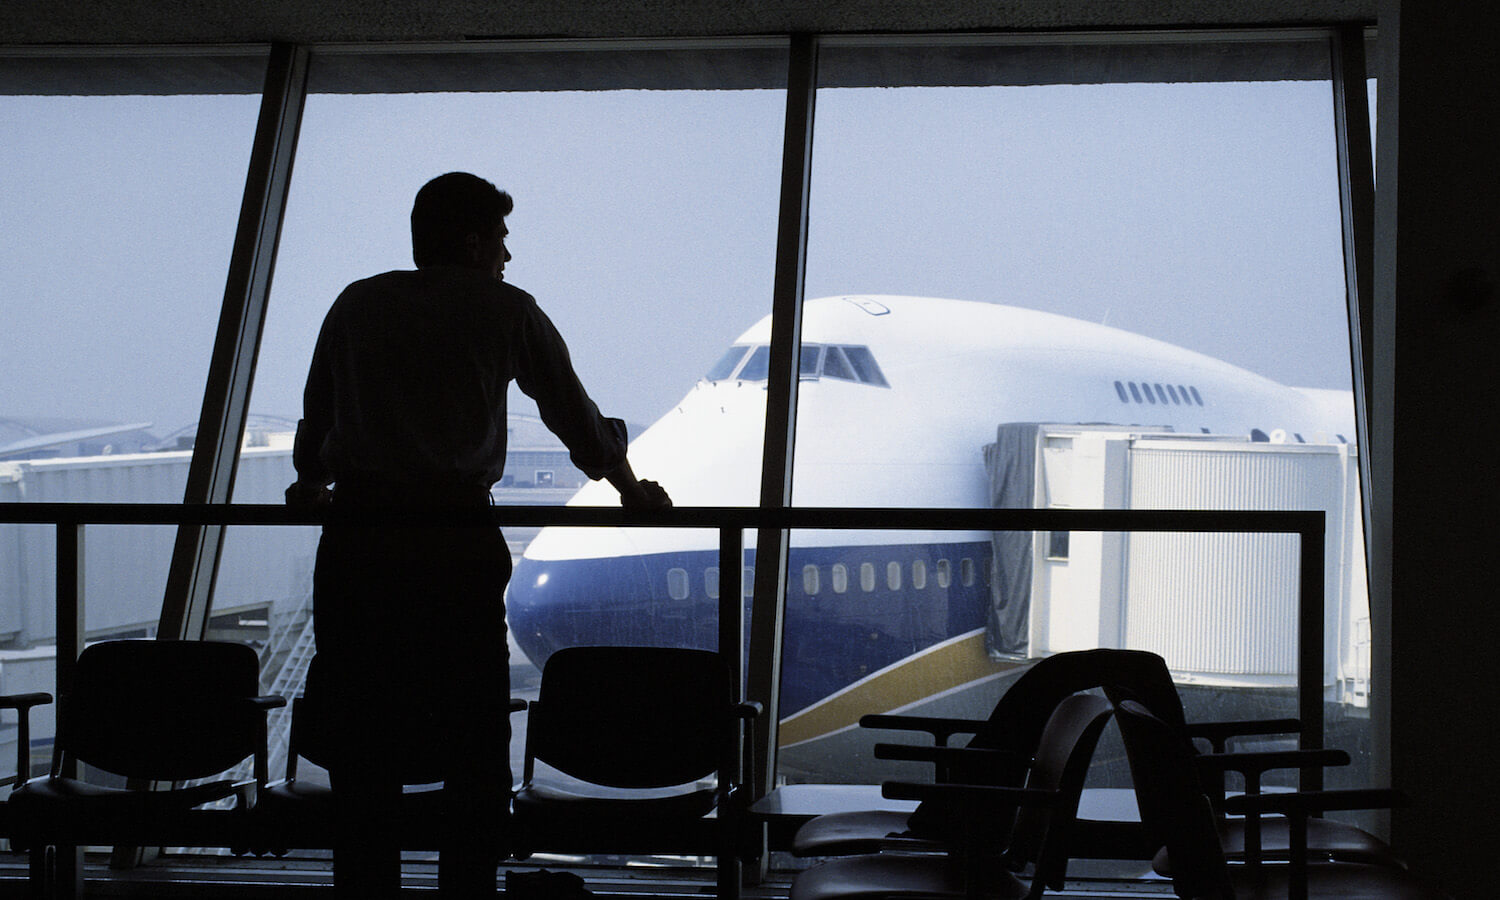 Silhouette of a man staring at airplanes on the tarmac through an airport window